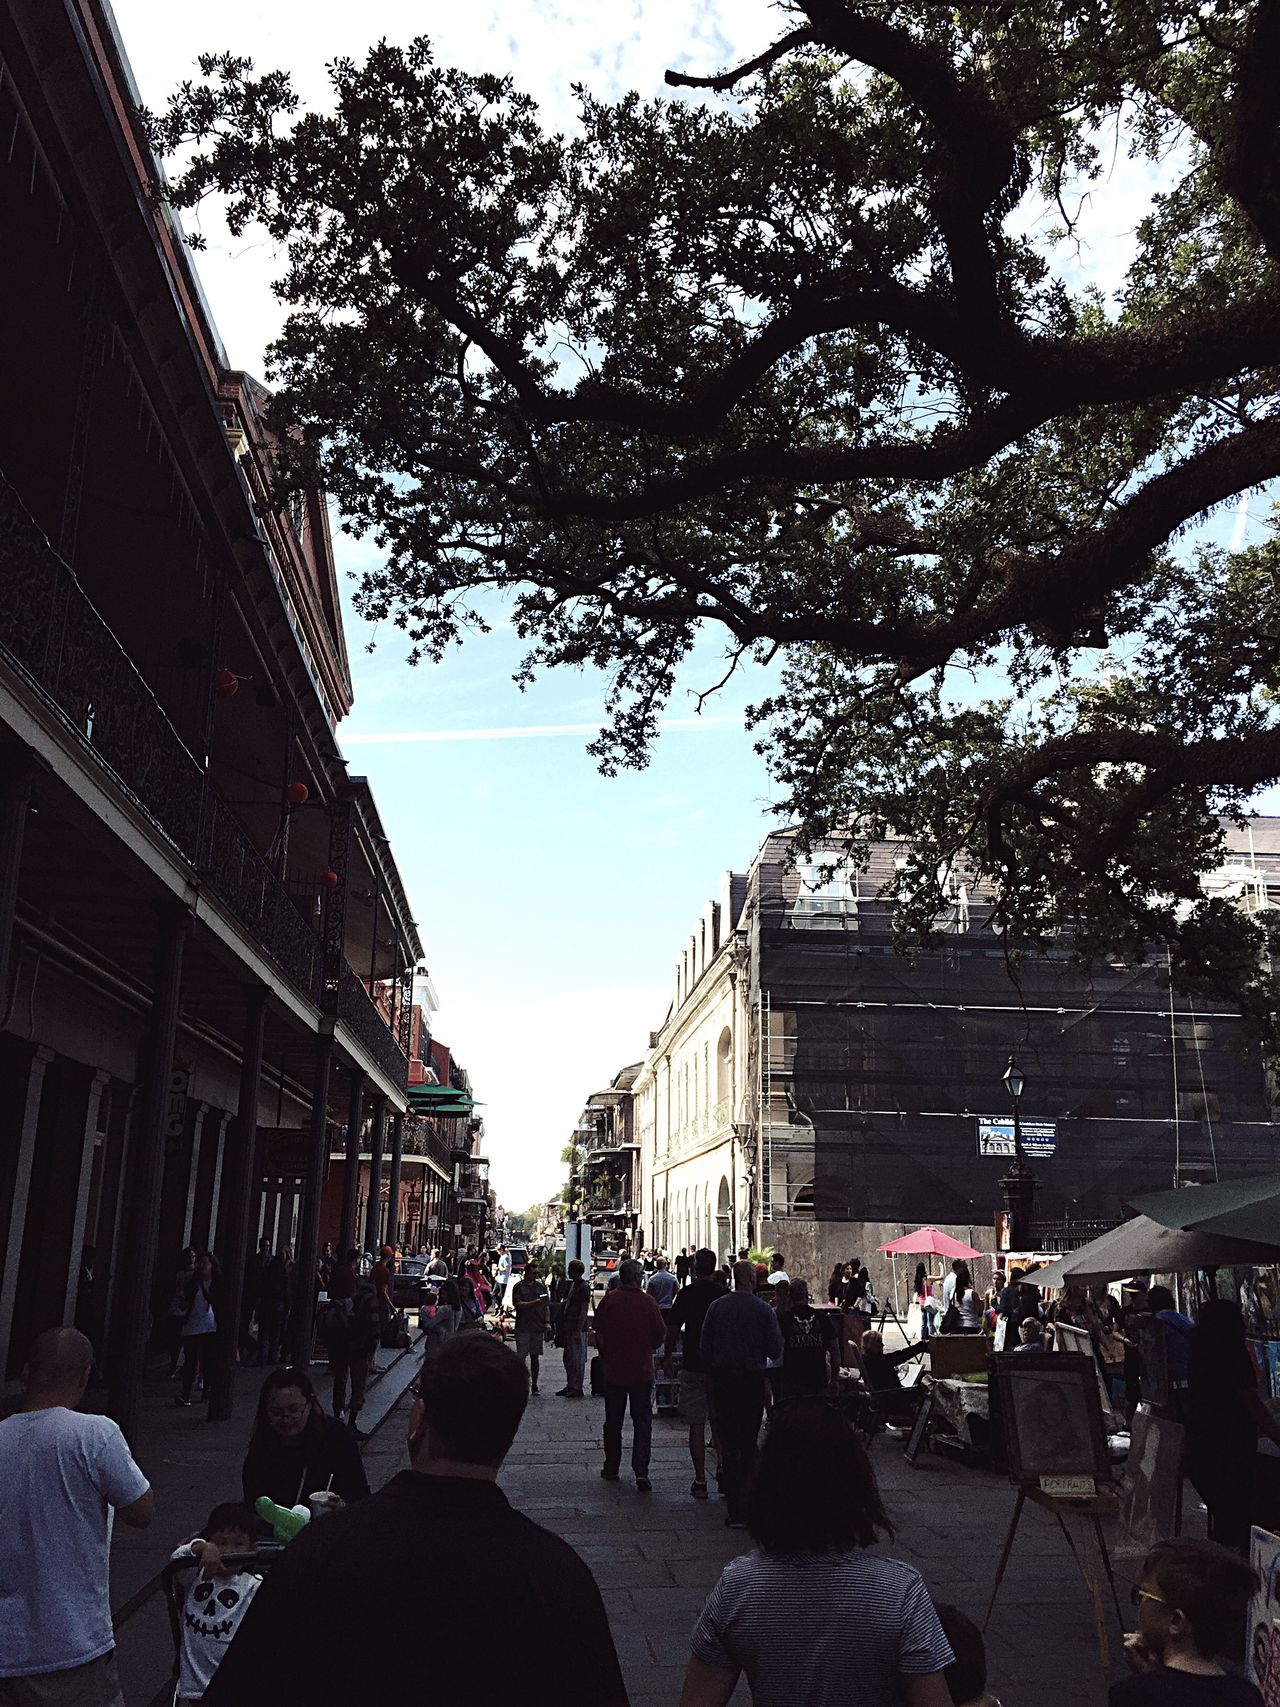 Building Exterior Architecture Built Structure Tree Large Group Of People City Street Real People Sky Men Women Day Outdoors Adult People Jackson Square